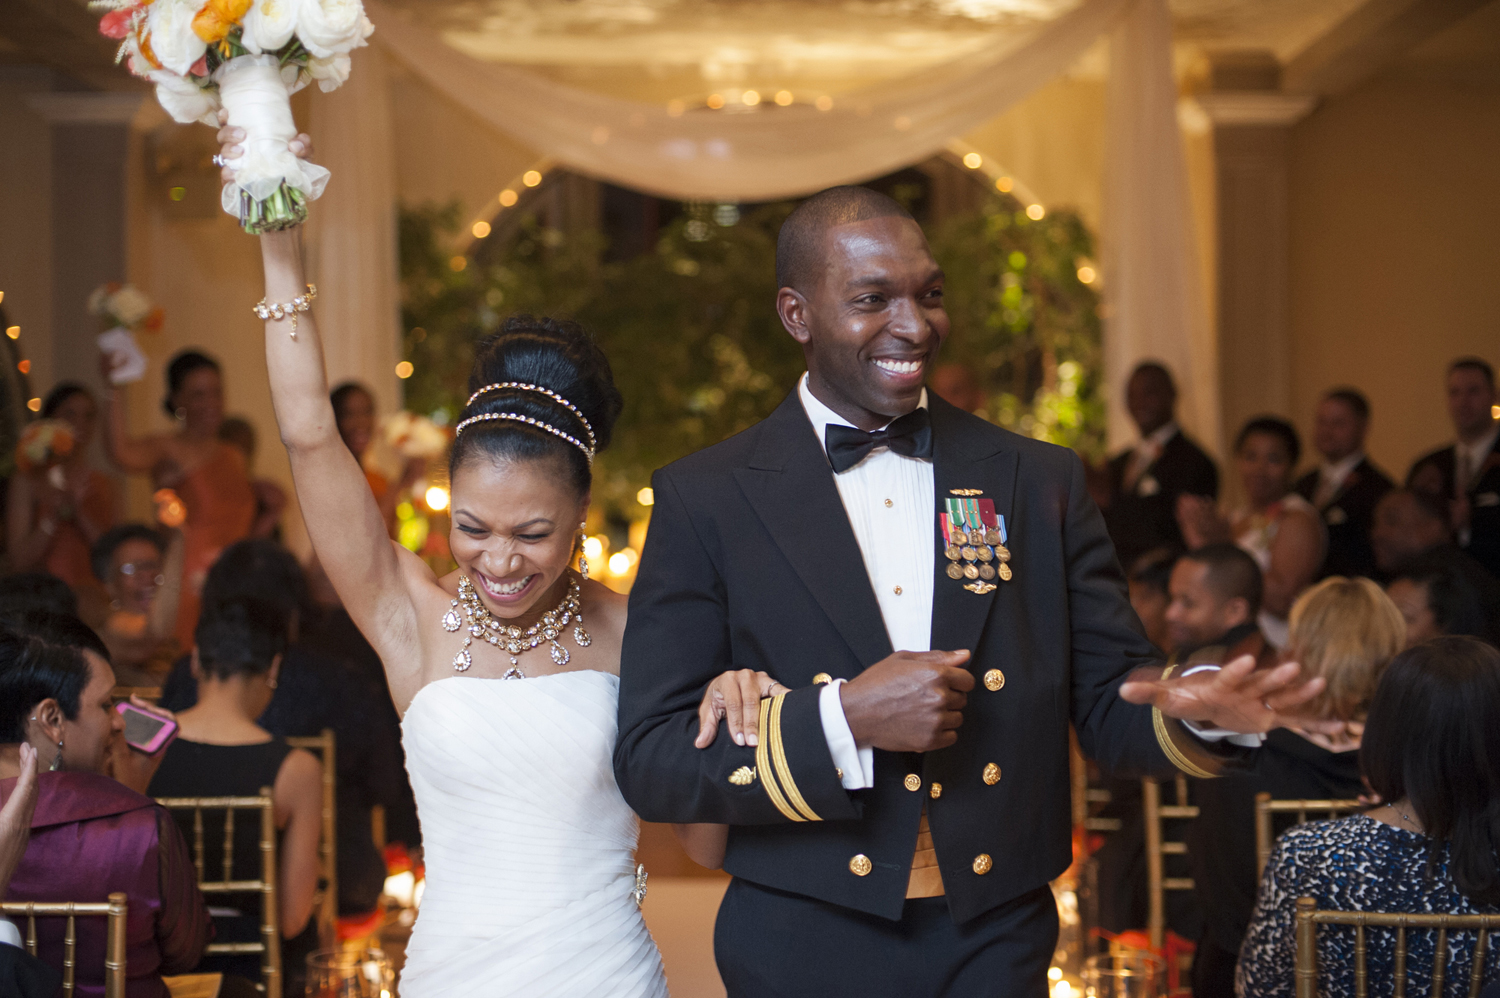 black bride and groom celebrate after their are wed at their ceremony at Manhattan Penthouse. Groom is in Navy uniform.